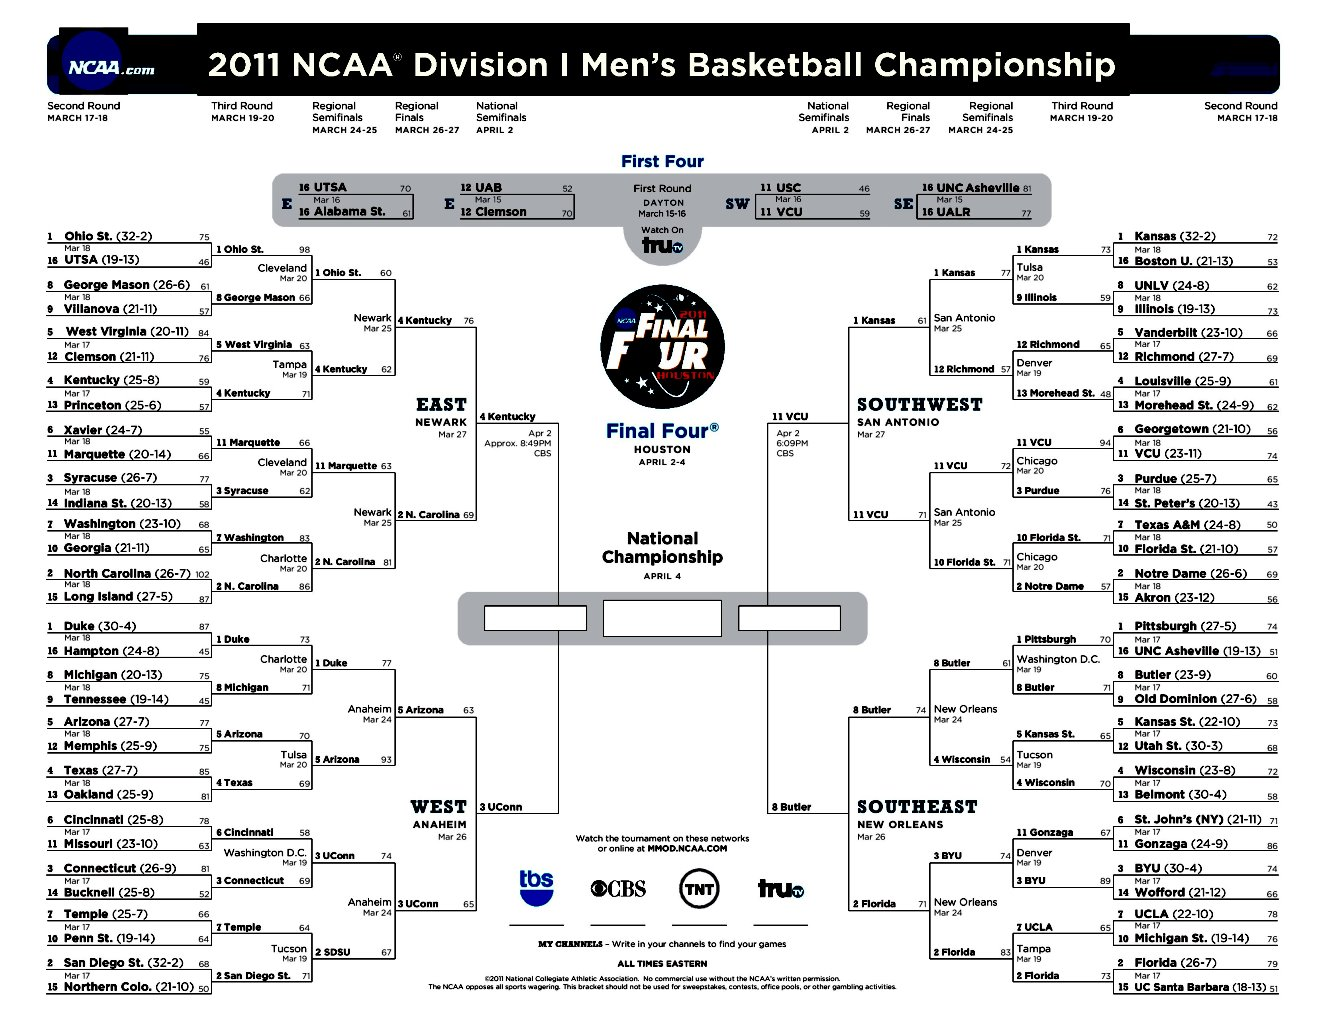 2011 NCAA Mens Bracket Update after March 27, 2011 Elite 8